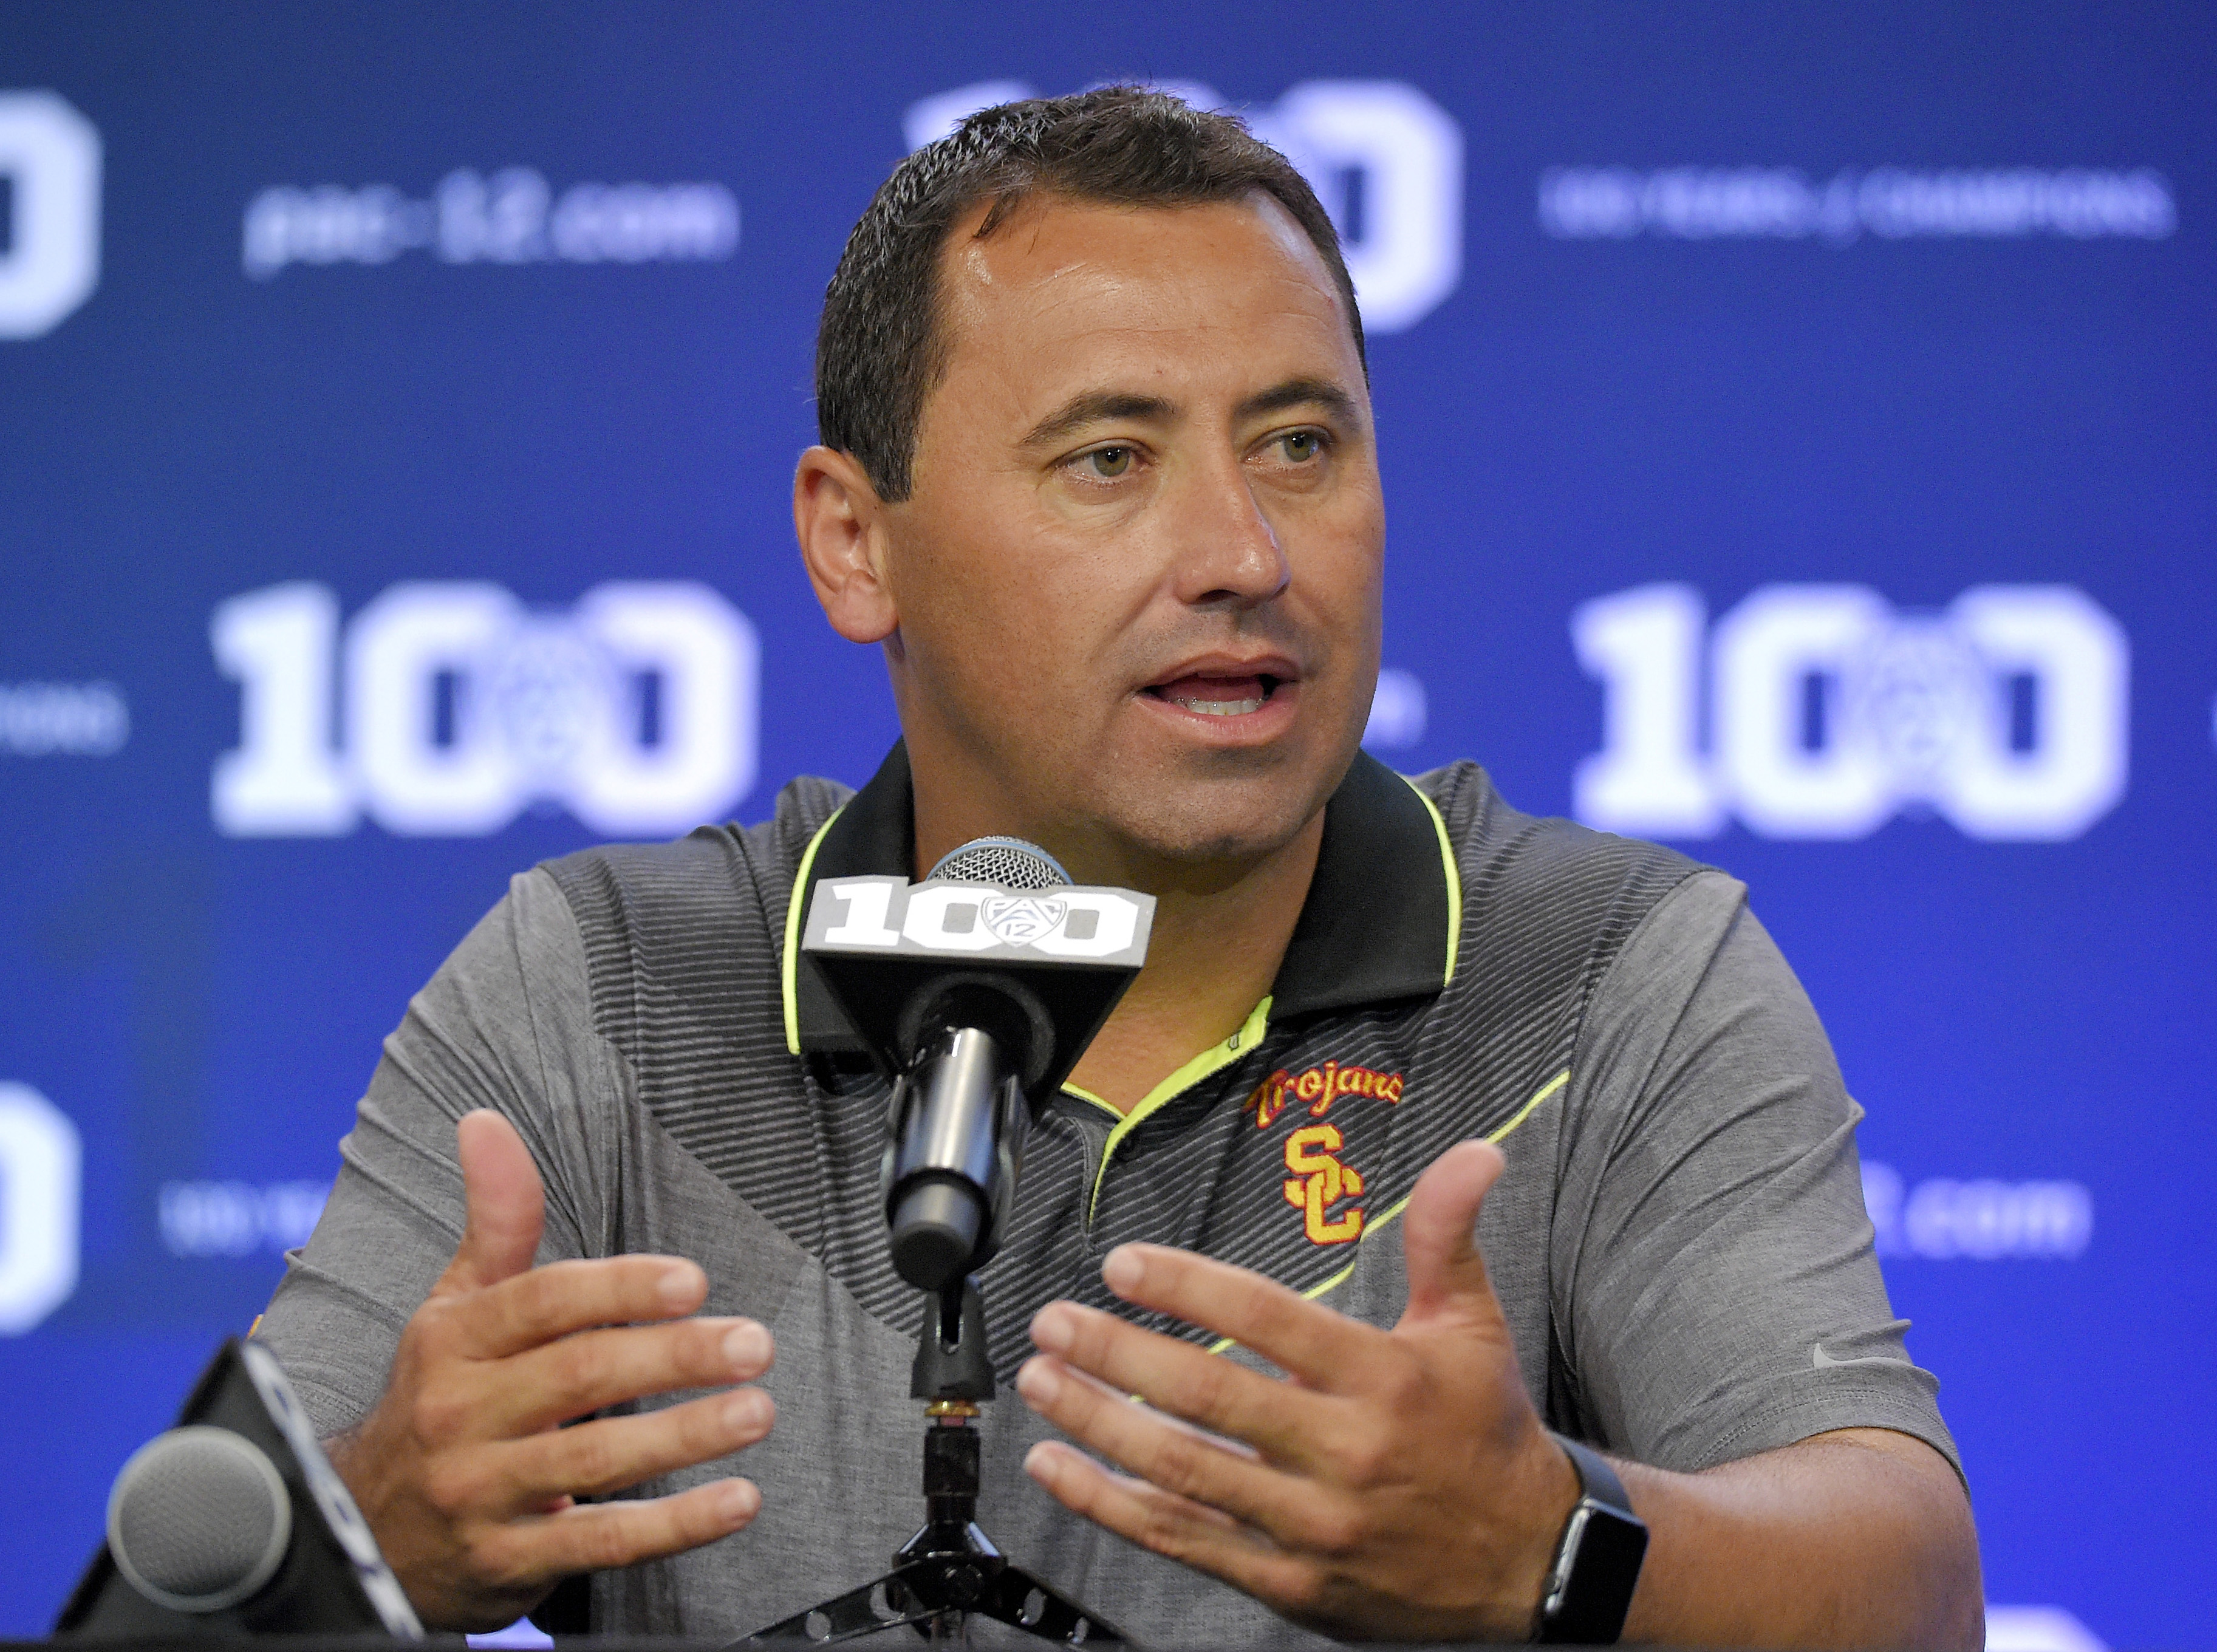 FILE - In this July 31, 2015, file photo, Southern California coach Steve Sarkisian speaks to reporters during NCAA college Pac-12 Football media days in Burbank, Calif. Sarkisian apologized Sunday, Aug. 23, 2015, for his behavior and inappropriate langua